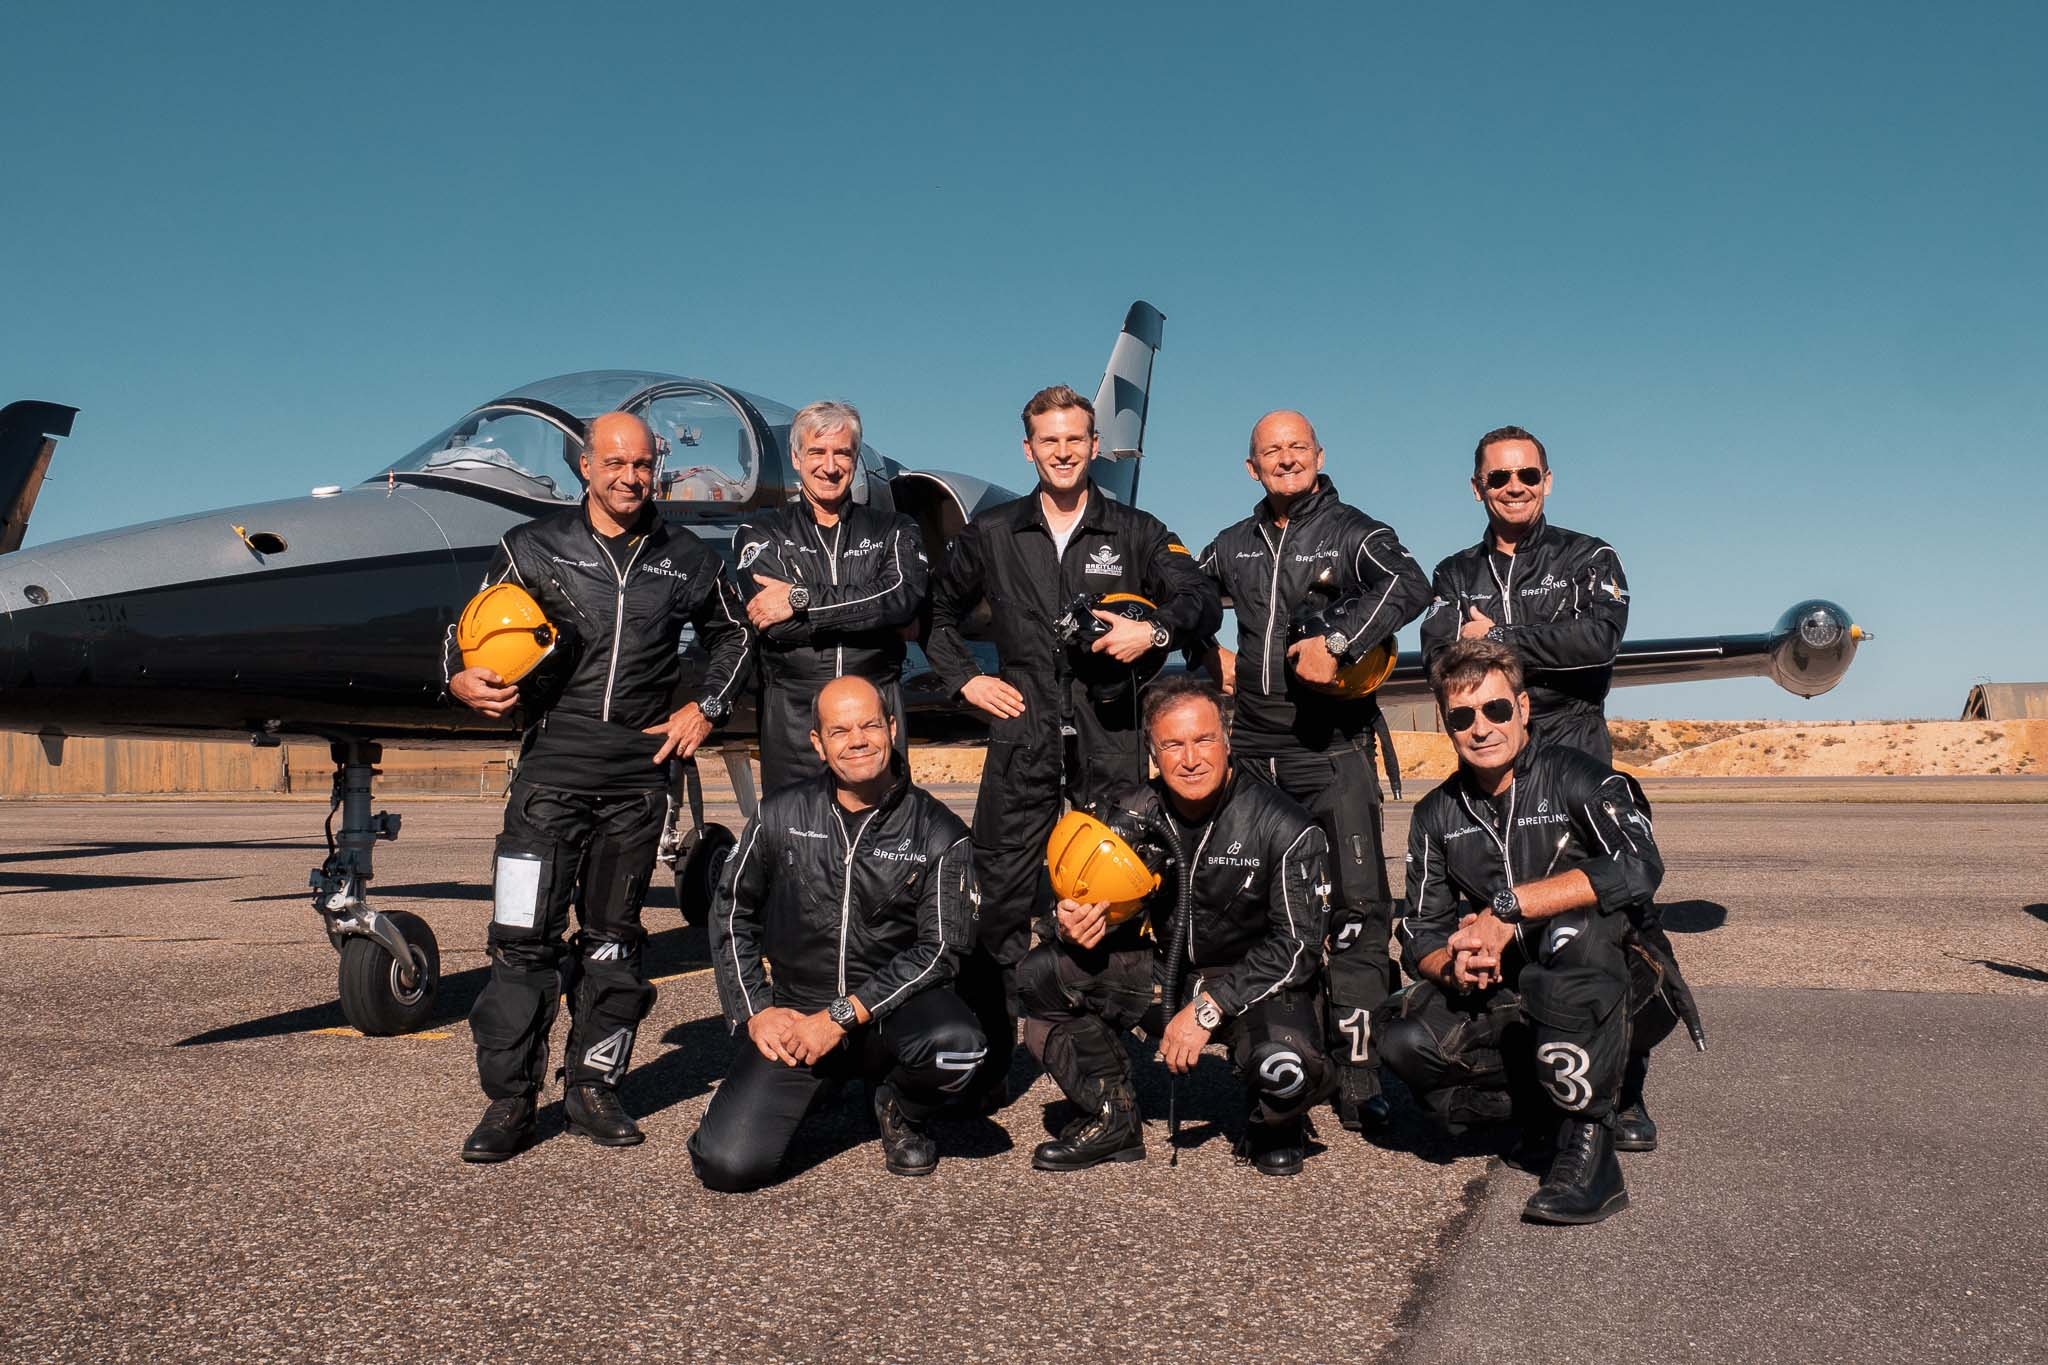 breilting jet team